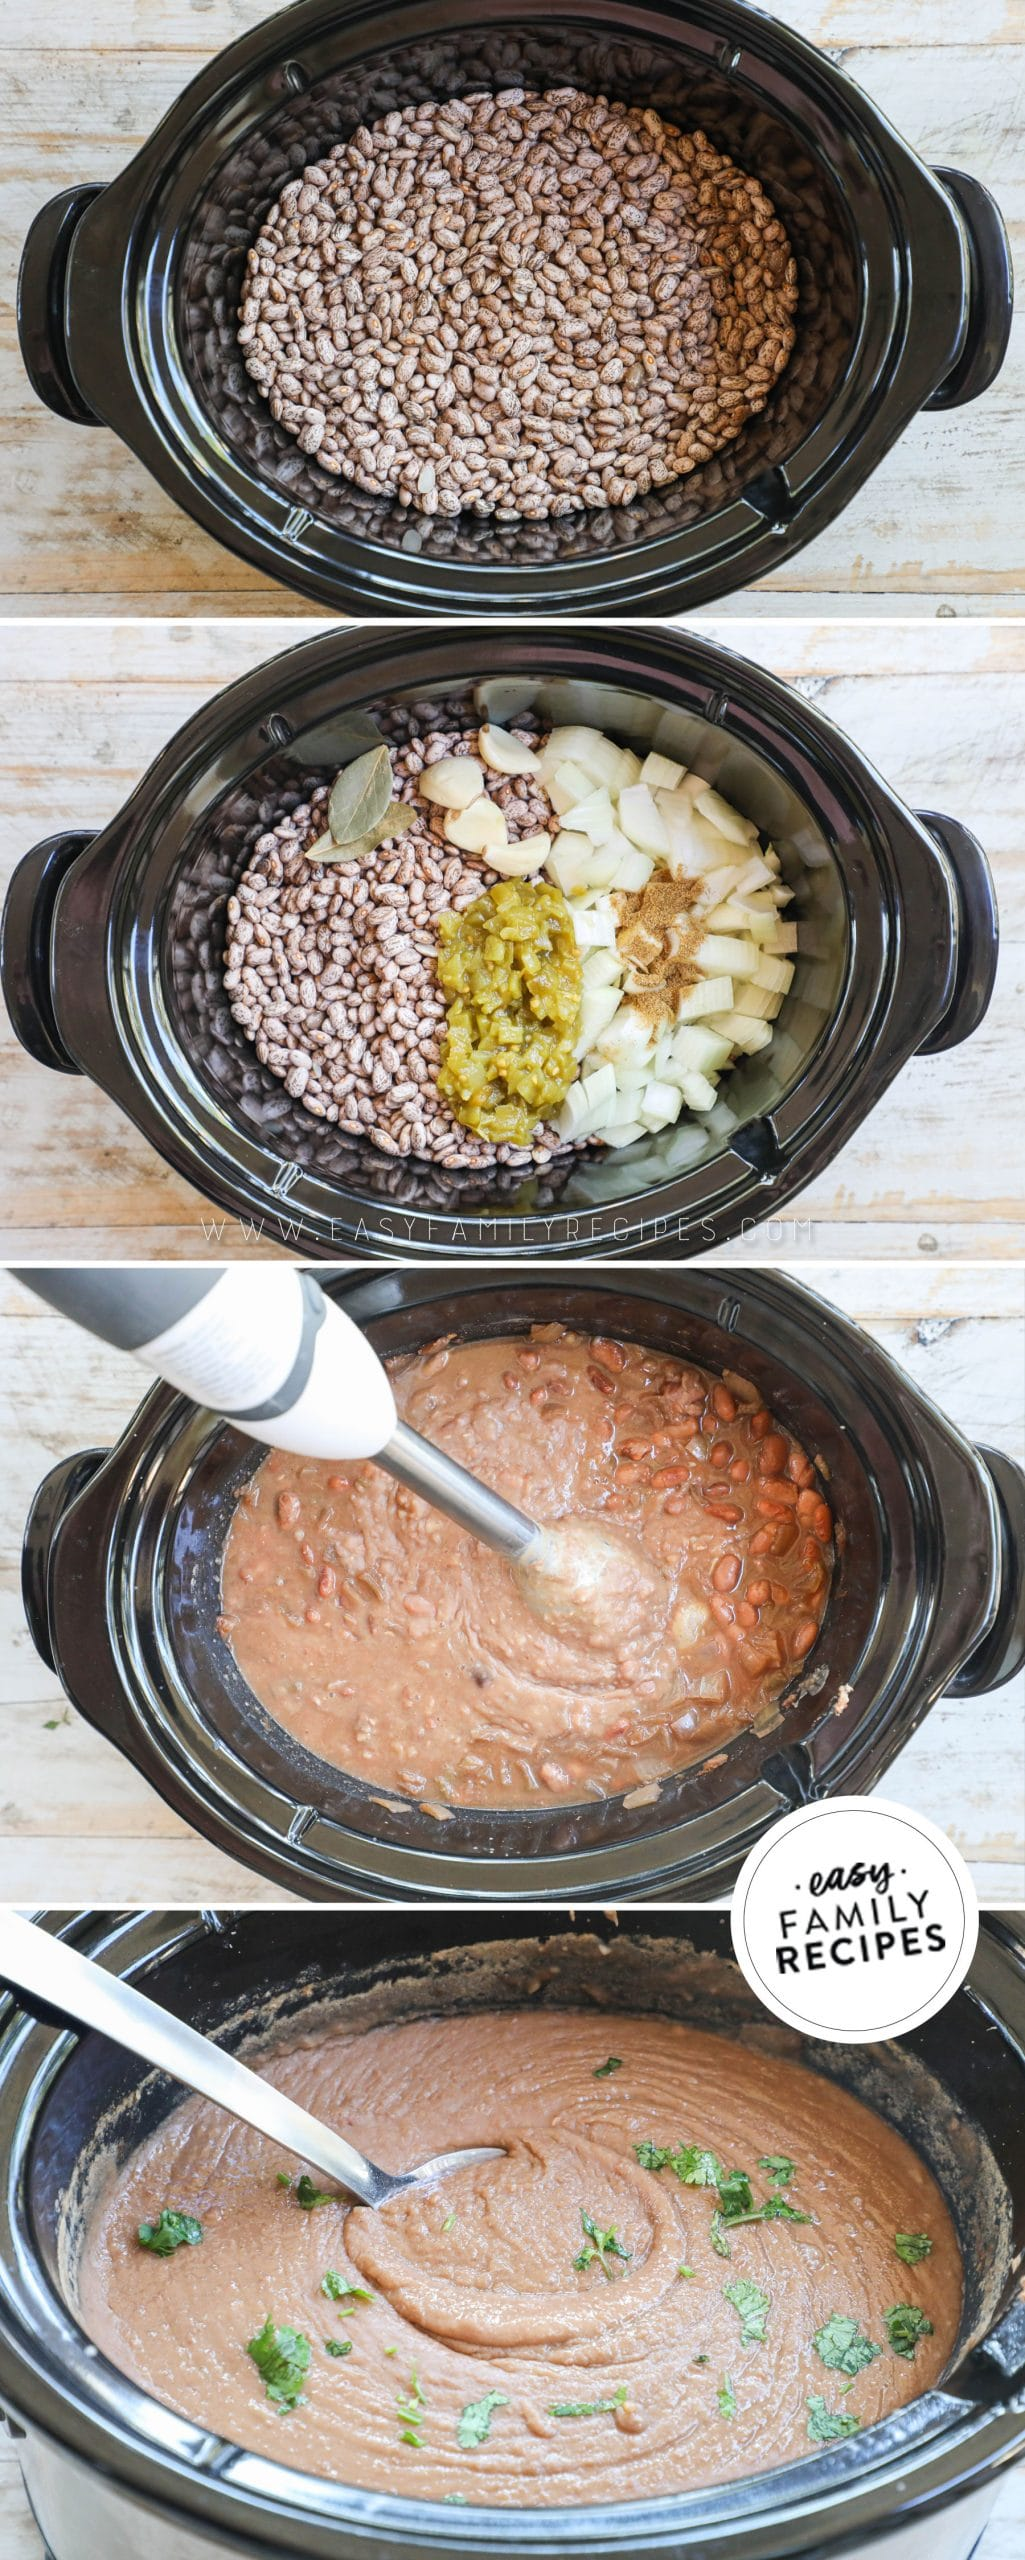 Process photos for How to make refried beans in a crockpot 1. combine pinto benas, onion, chiles, spices and broth in crock pot. 2. cook on low. 3. use immersion blender to puree beans. 4. serve with your favorite dinner